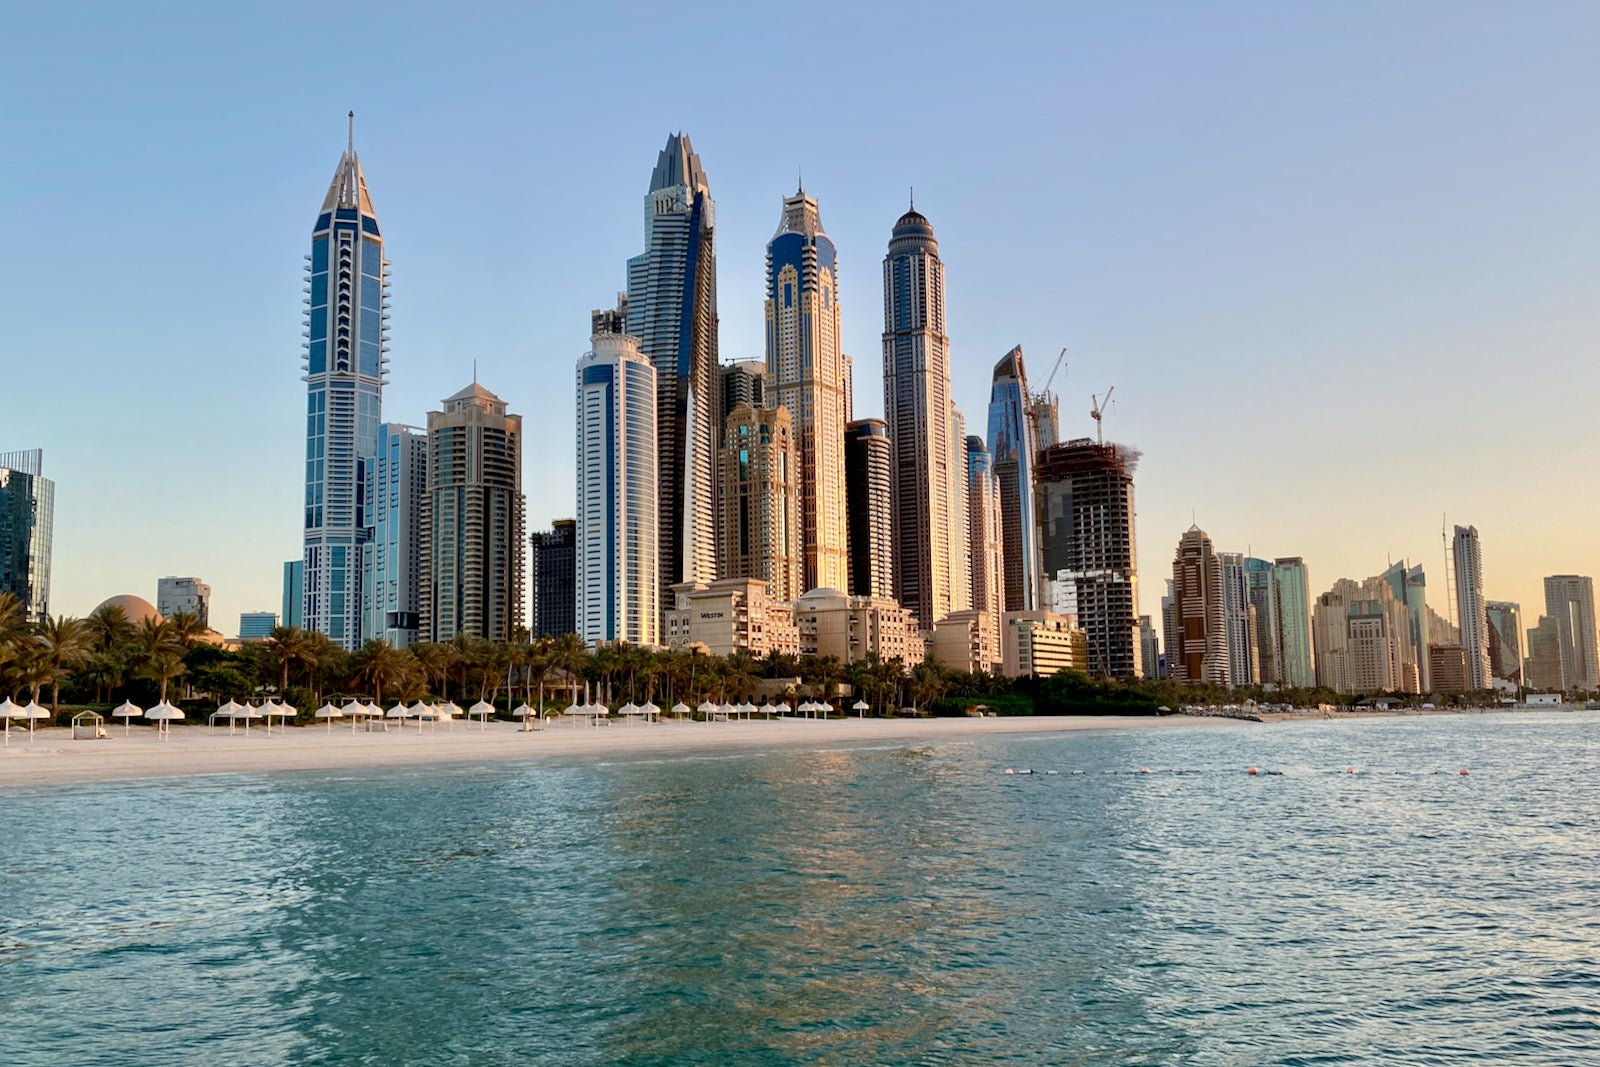 Emirates brings back Dubai Connect package - The Points Guy